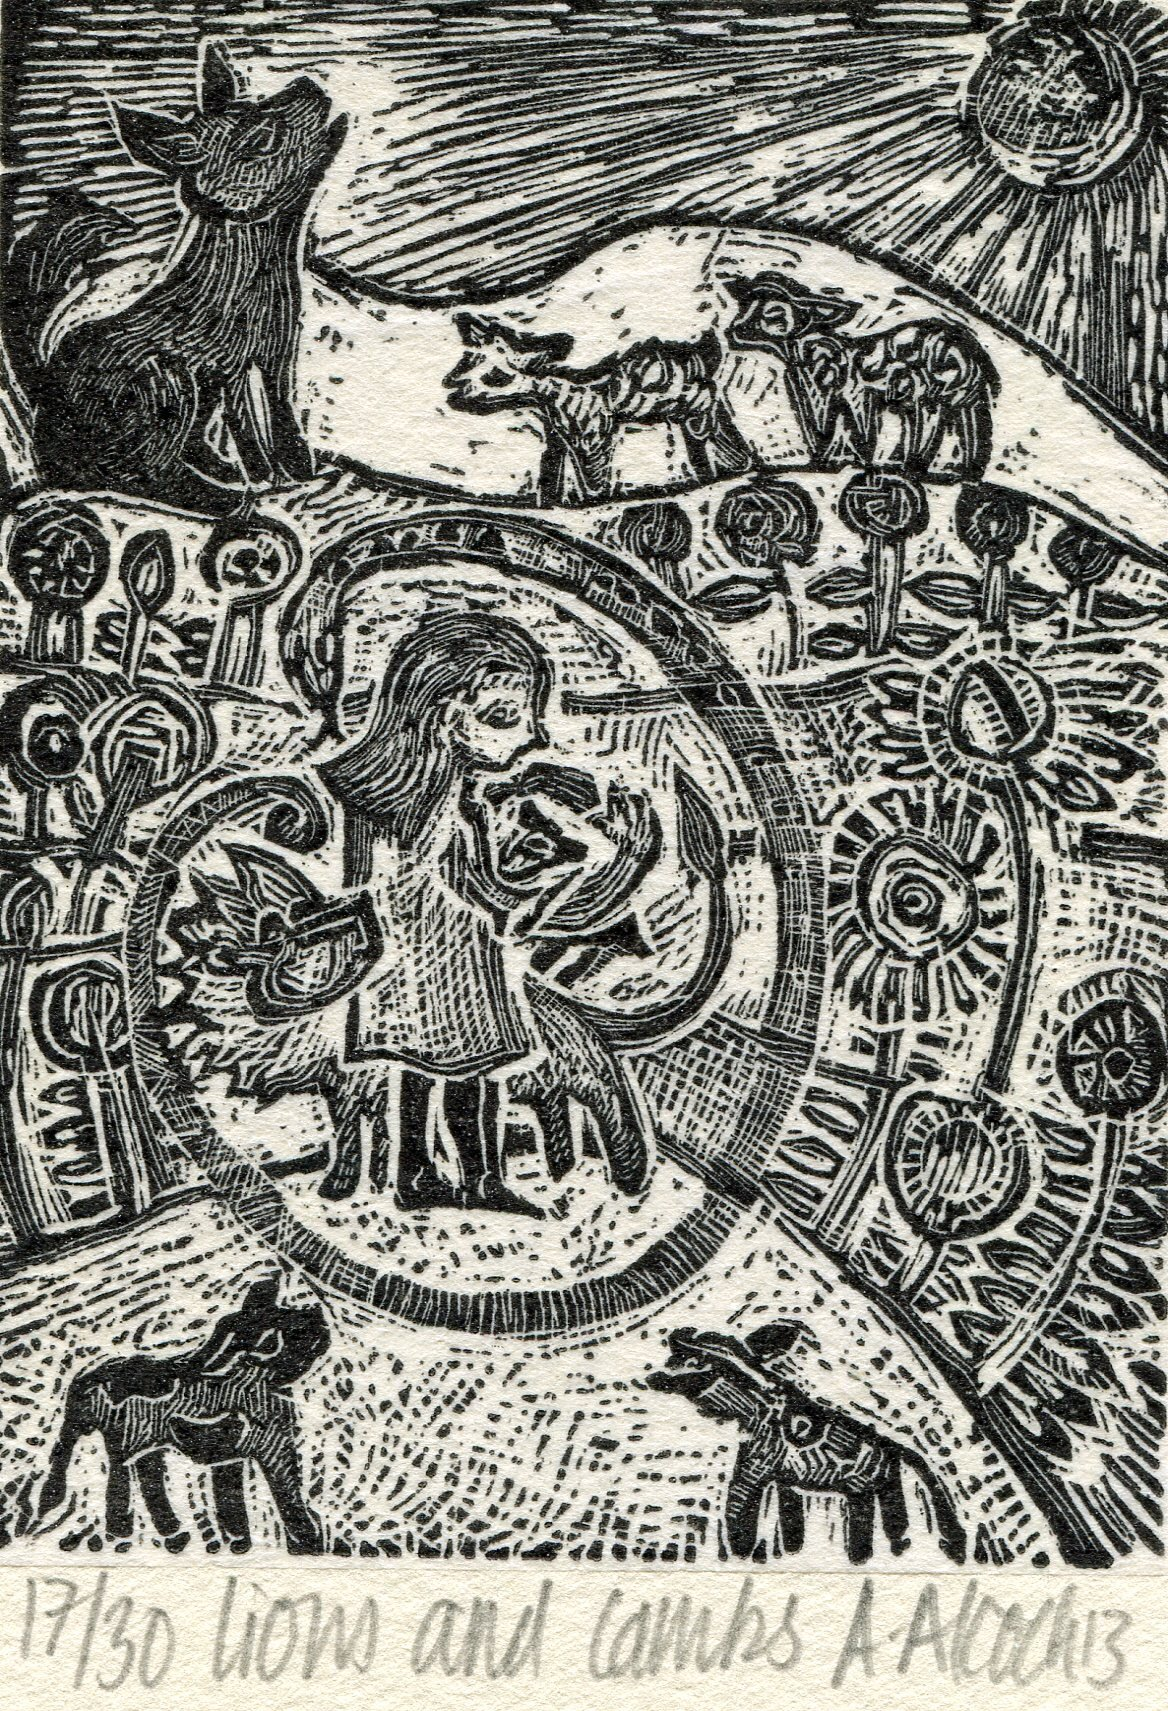 54b  Anna Alcock  Lions and lambs  wood engraving on paper